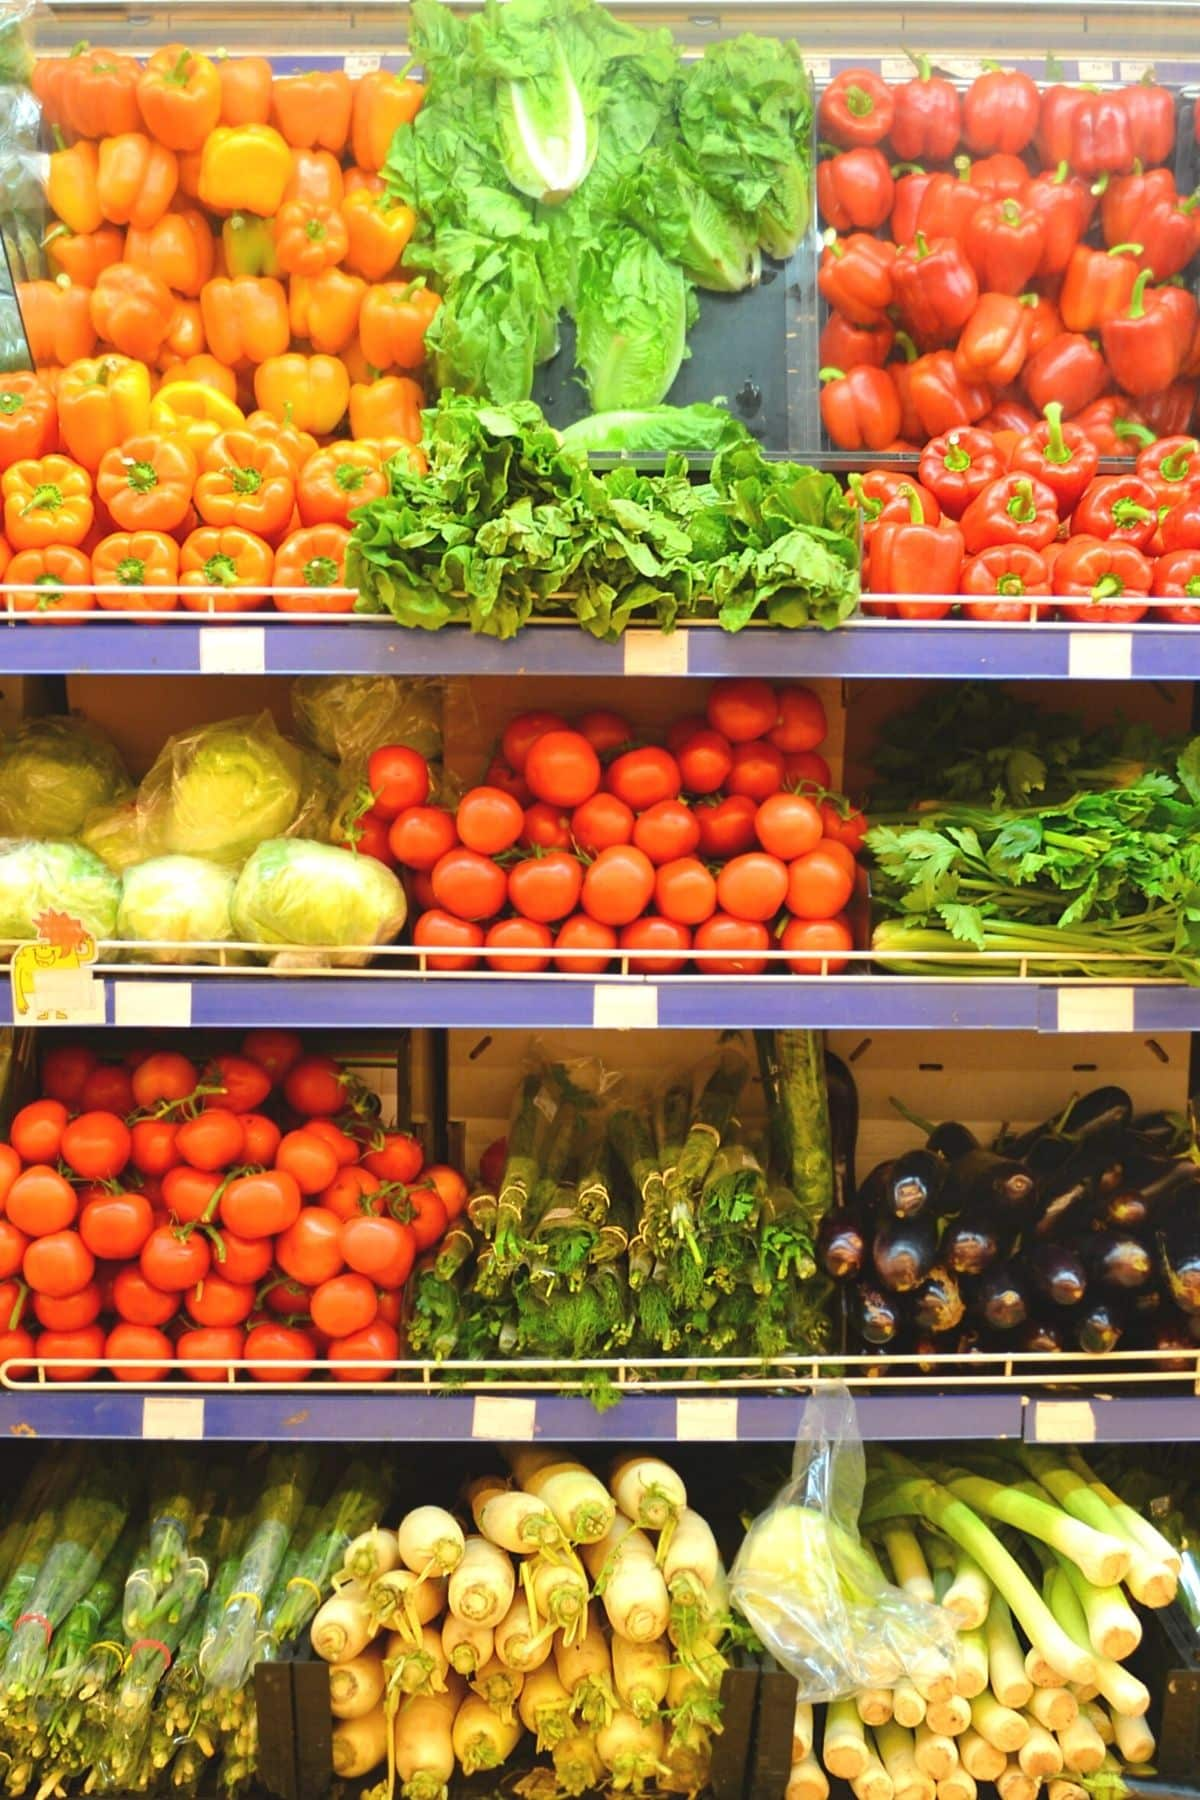 Racks of vegetables at the store